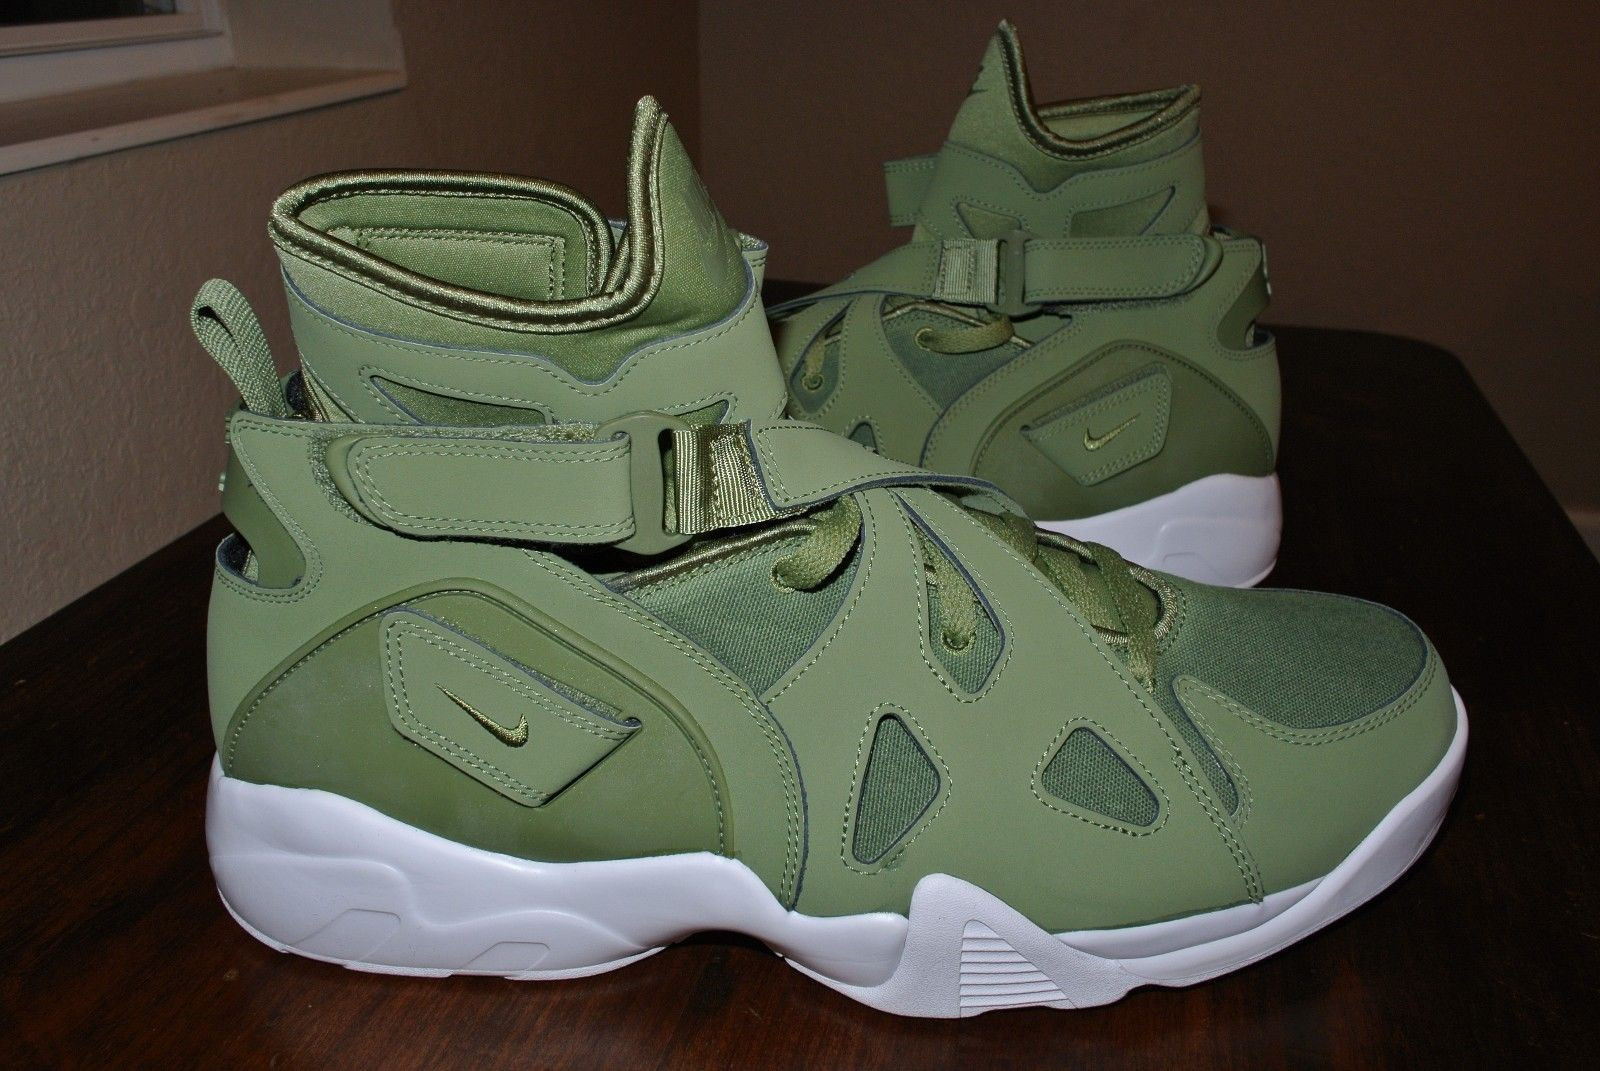 203b88b9a10 Nike Air Unlimited Palm Green White 889013 and 50 similar items